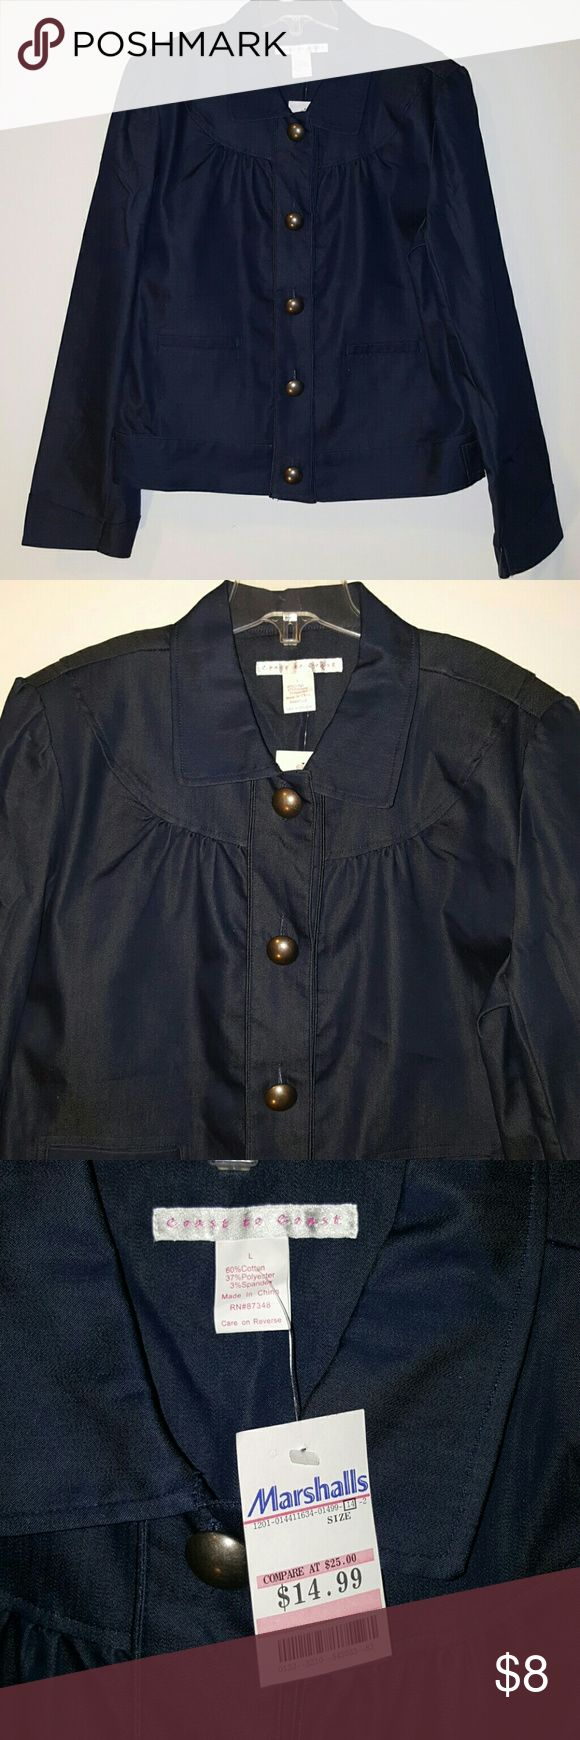 Super cute and girly blue cotton jacket Super cute and girly jacket with large silver antique colored buttons with two functional pockets in the front Coast to Coast Jackets & Coats Blazers